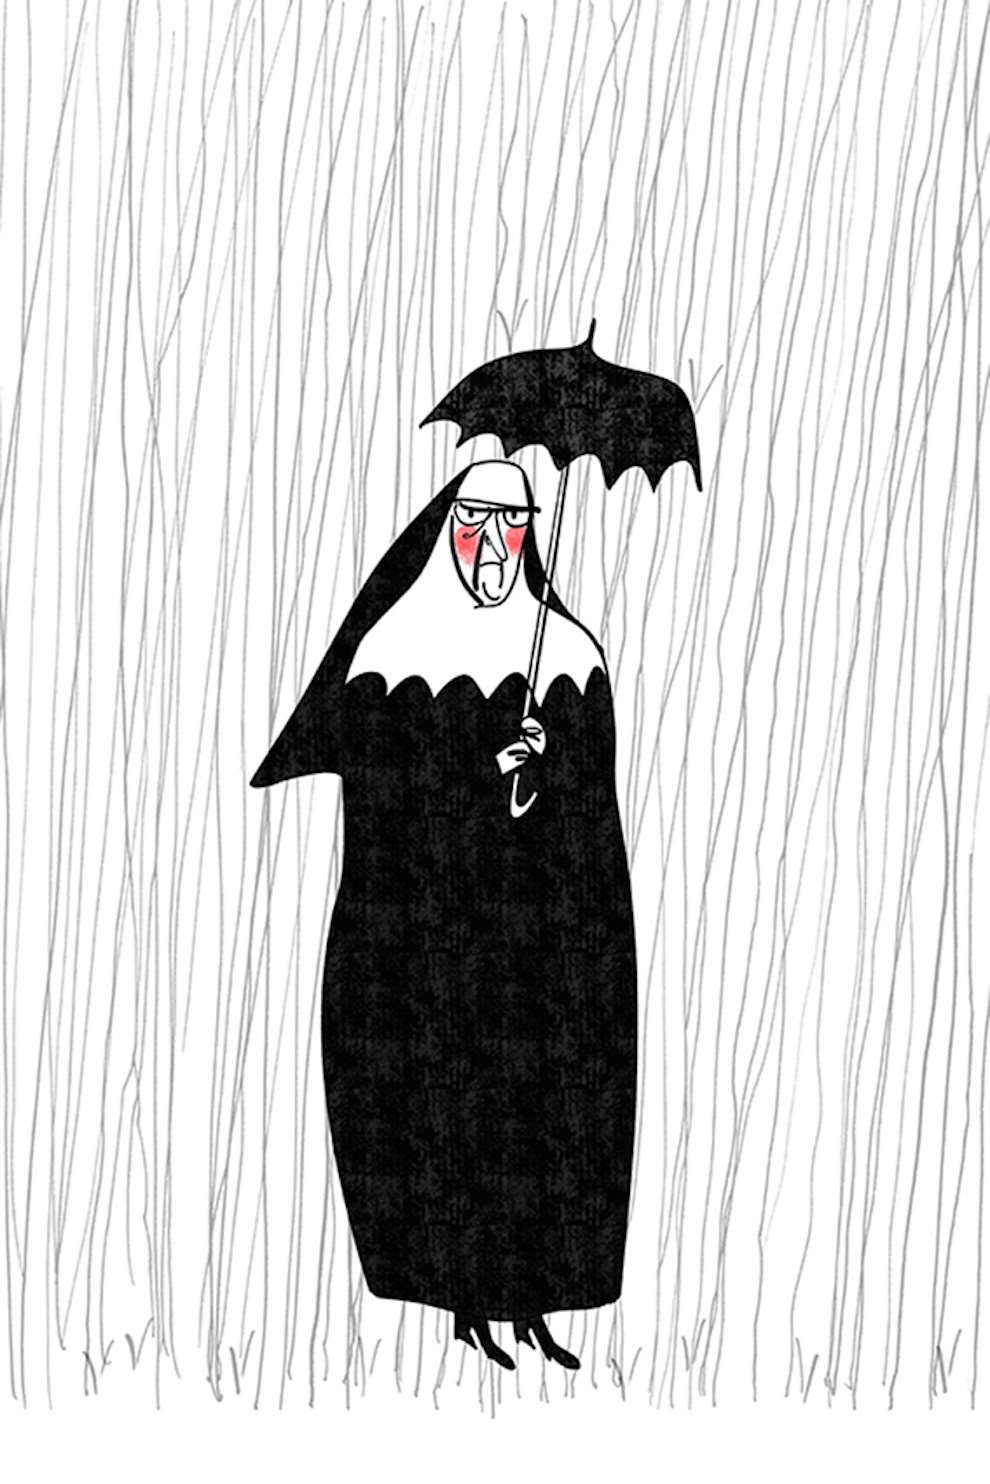 MH Jeeves, Line drawing, humorous style drawing of a nun in the rain with an umbrella.